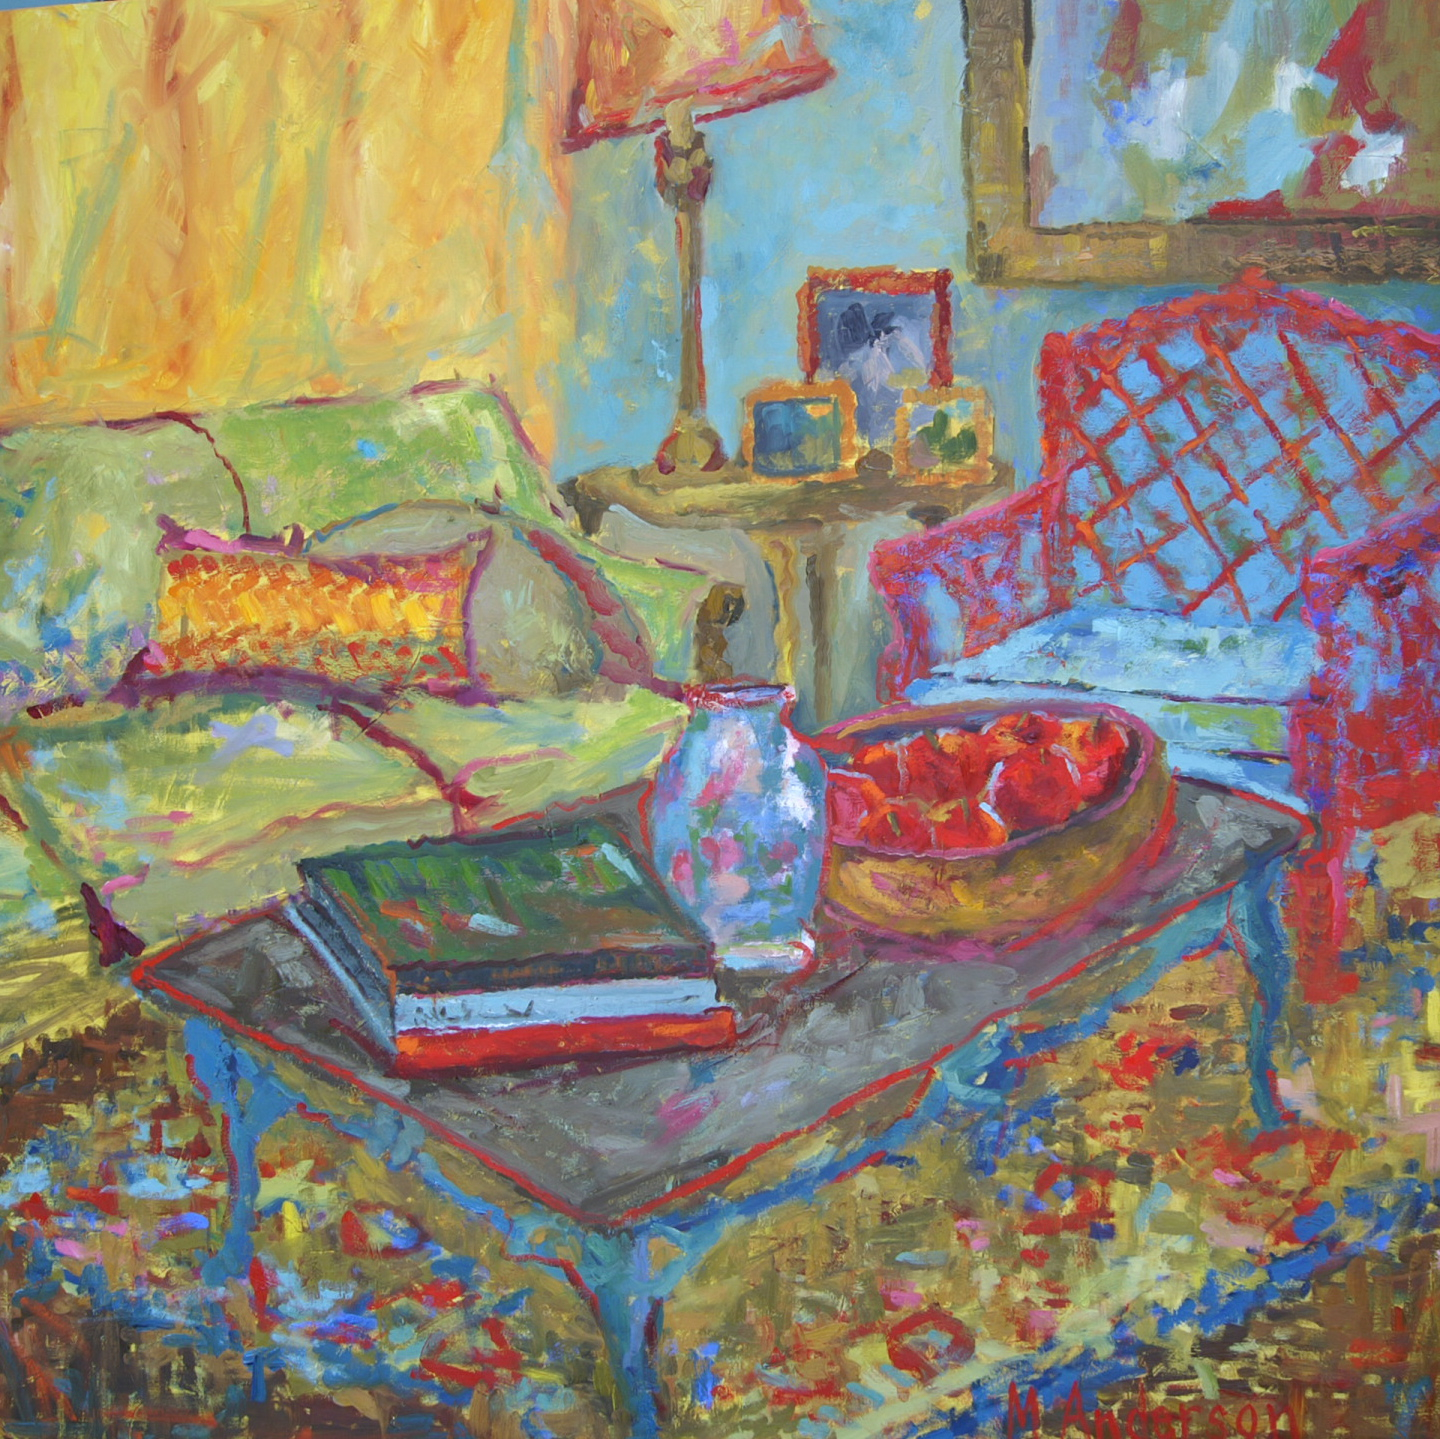 Green Couch - Sold